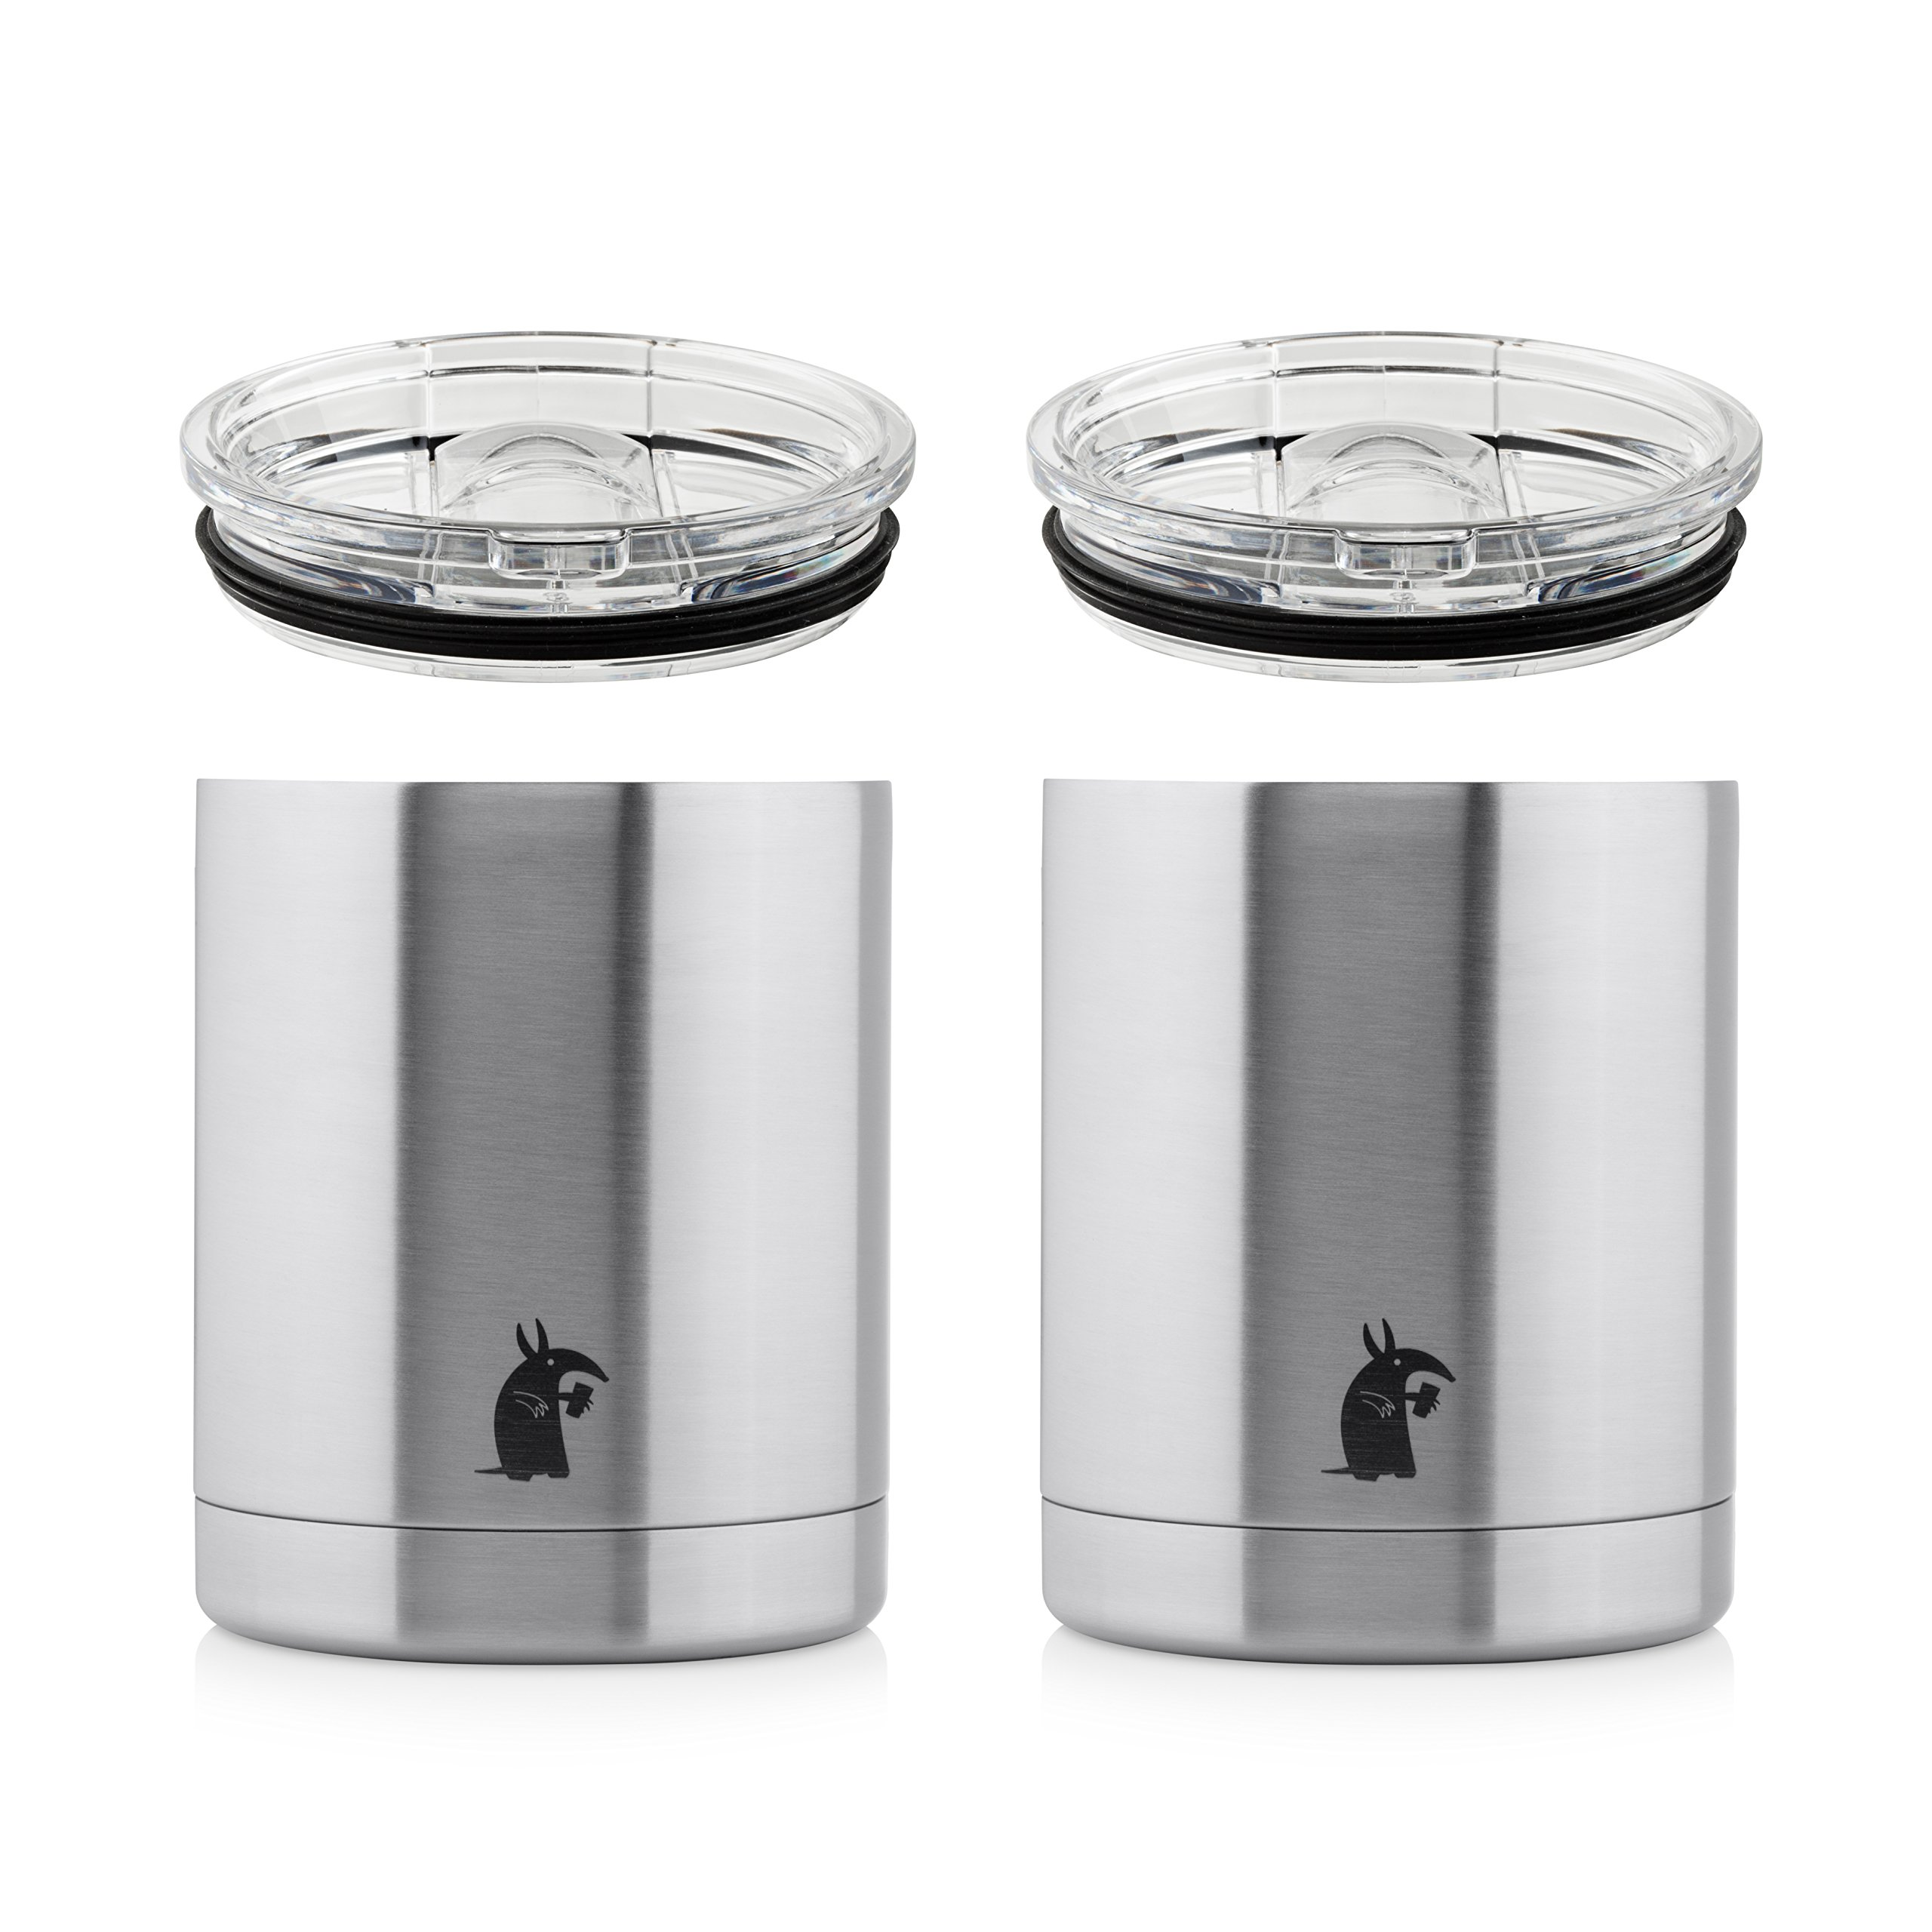 Thirsty Aardvark 10 oz Lowball Tumbler for Whiskey, Coffee and Cocktails, Stainless Steel Double Wall Vacuum Insulated Cup with Lid, 2 Pack (Silver)